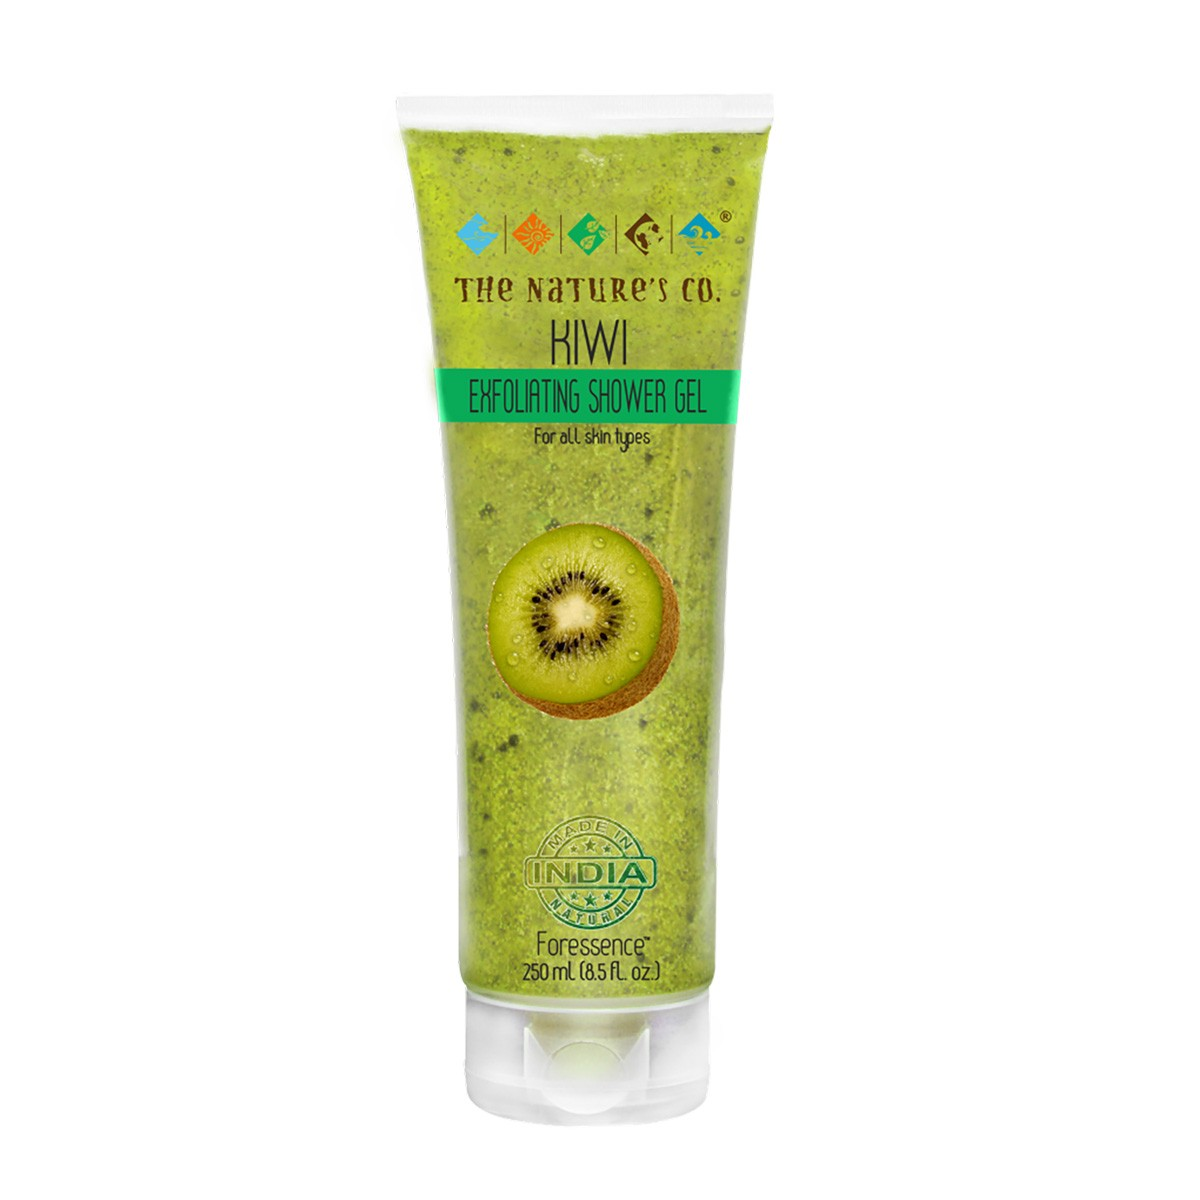 Kiwi Exfoliating Shower Gel